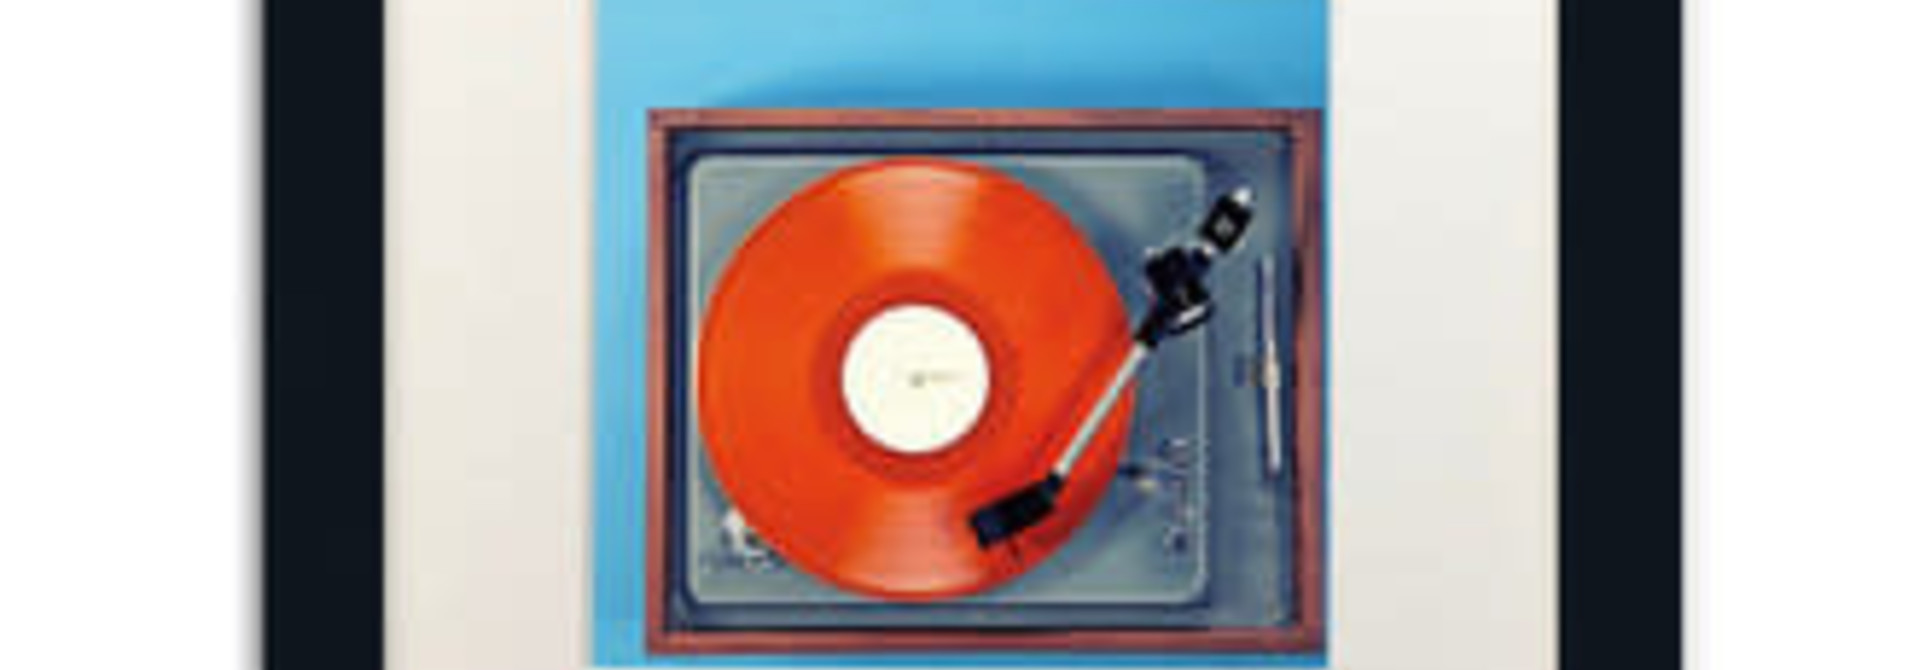 M24 ART PHOTO PRINTS, RECORD PLAYER